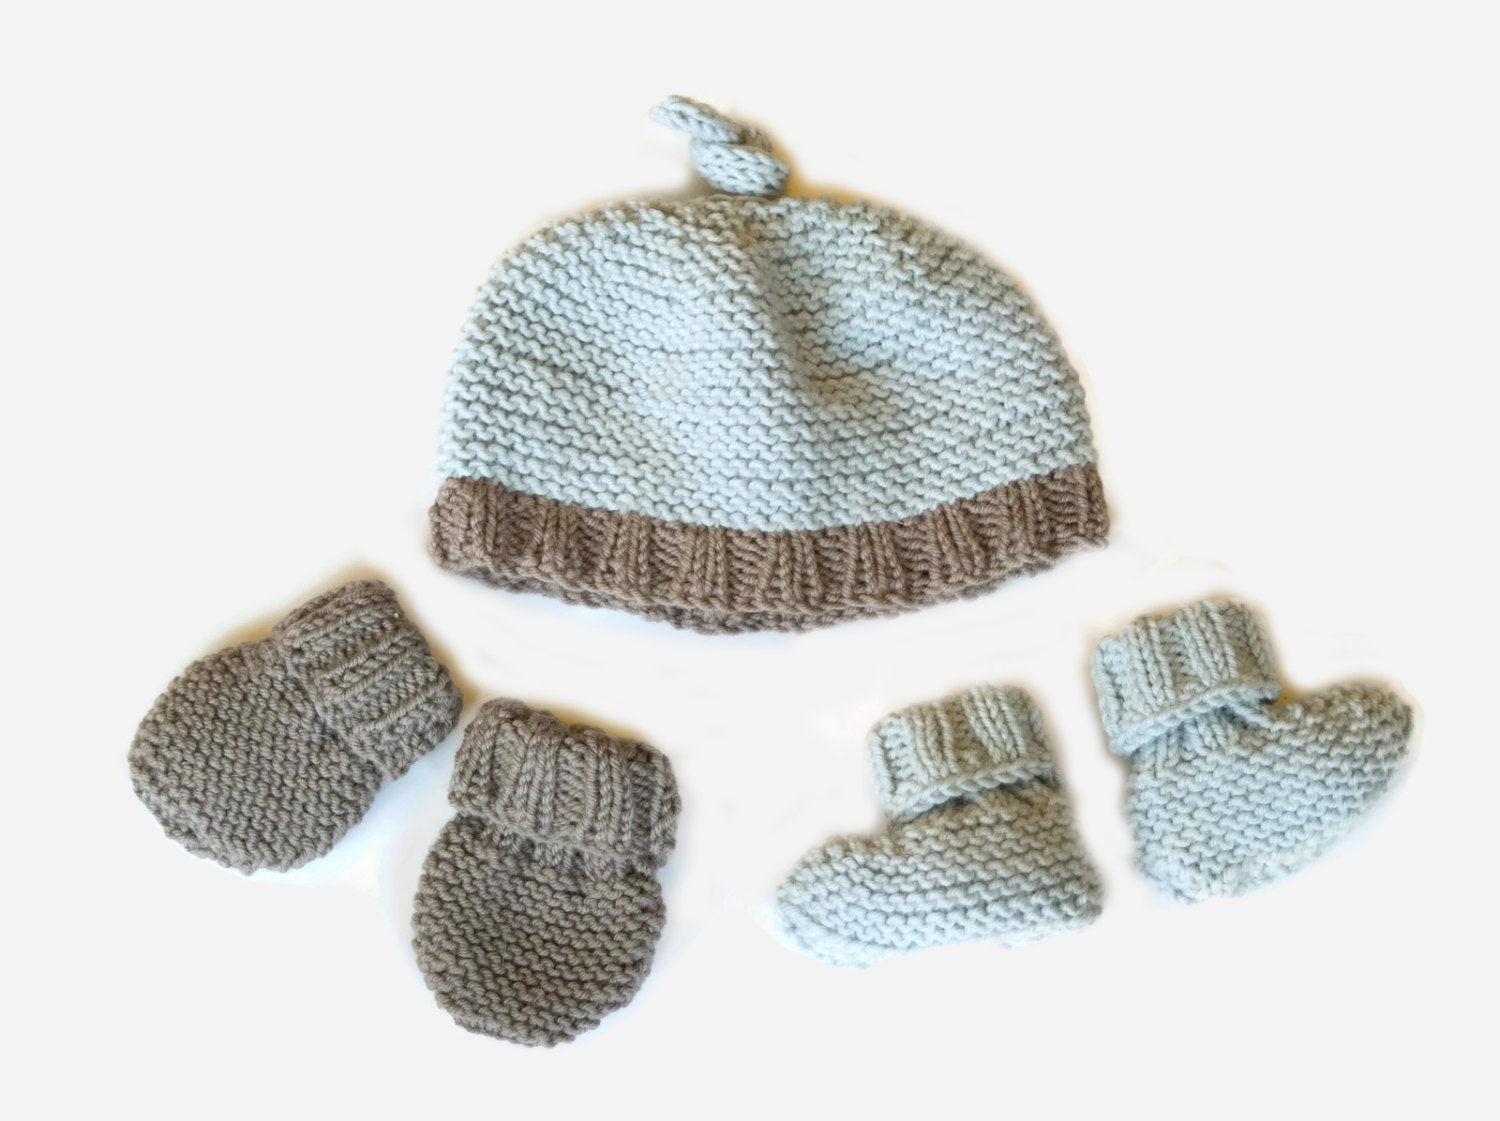 Knitting Pattern For Baby Hat And Mittens : Easy Knitting Pattern: baby hat booties & mittens by SprogletsKits